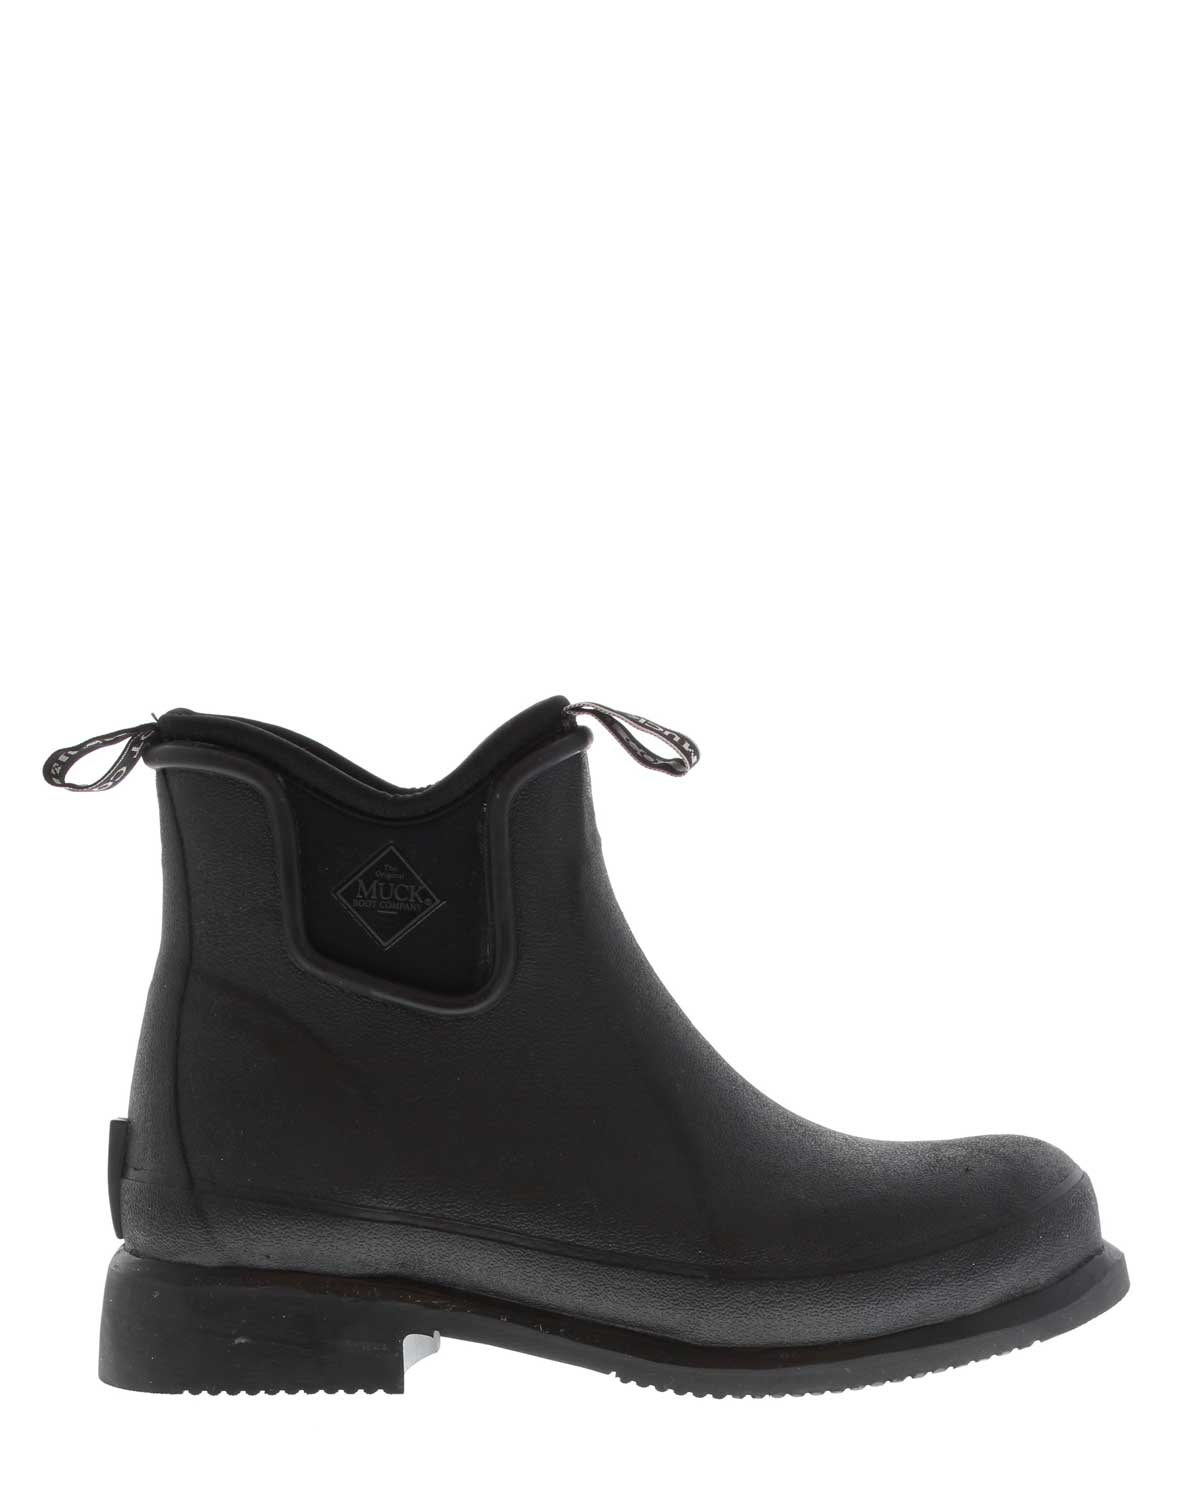 Wear Ankle Boots Black